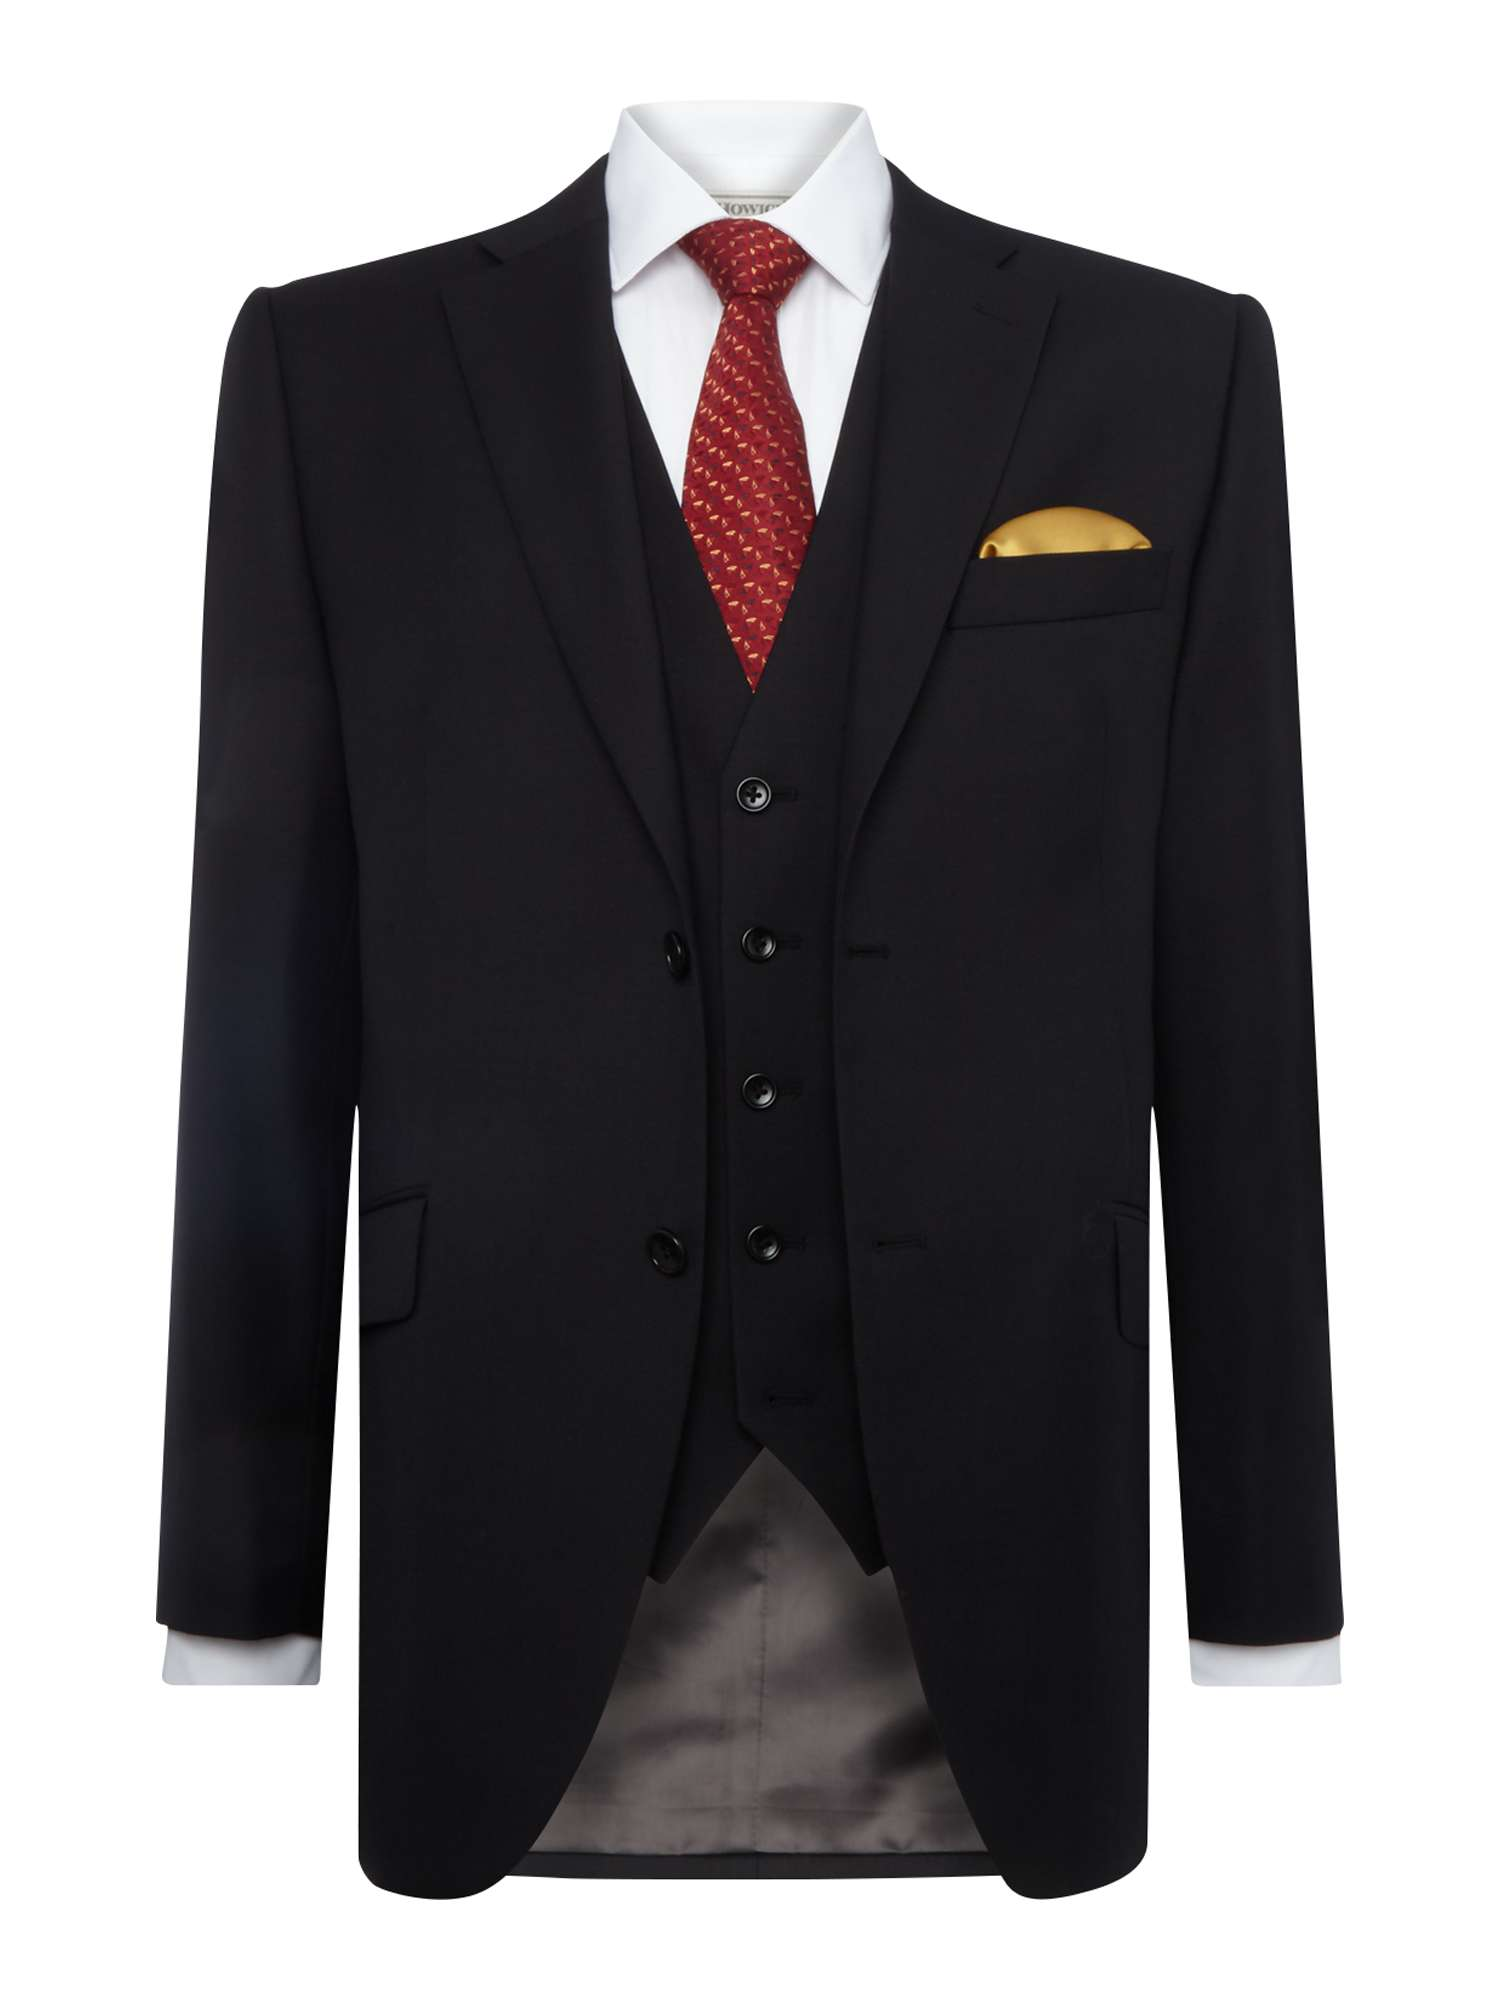 Howick Tailored Fenwick Twill Suit £145